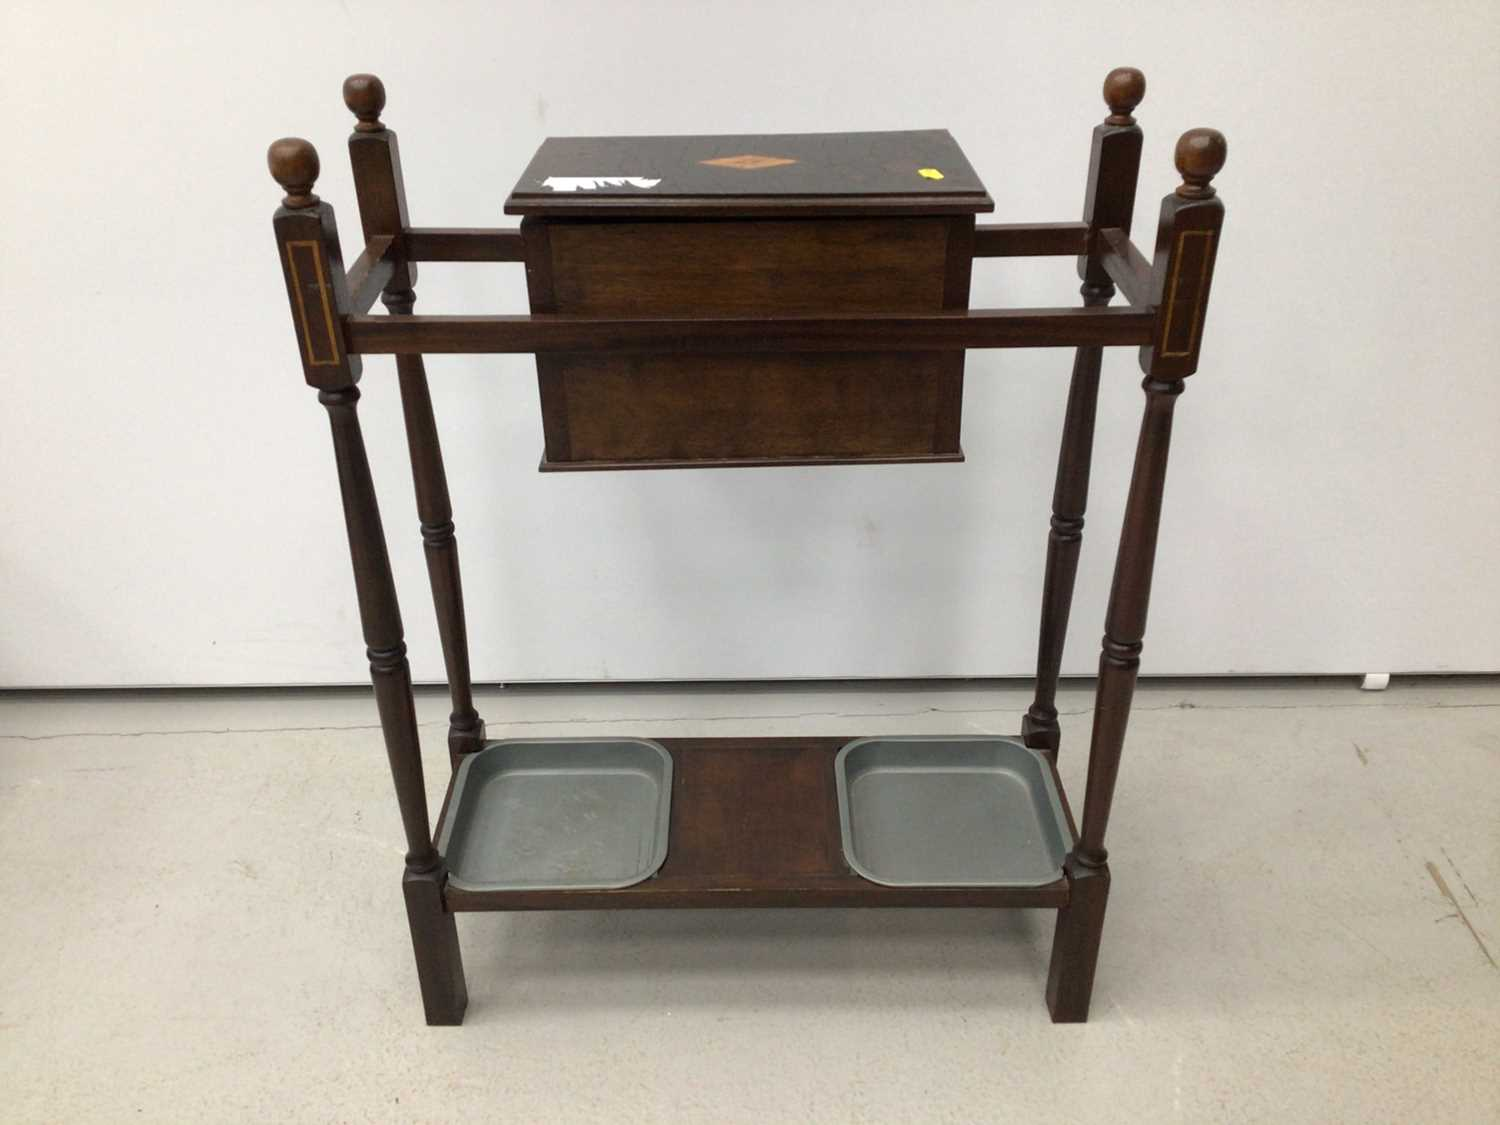 Lot 27 - Small umbrella/stick stand with glove box and two trays below, 60cm wide x 81cm high